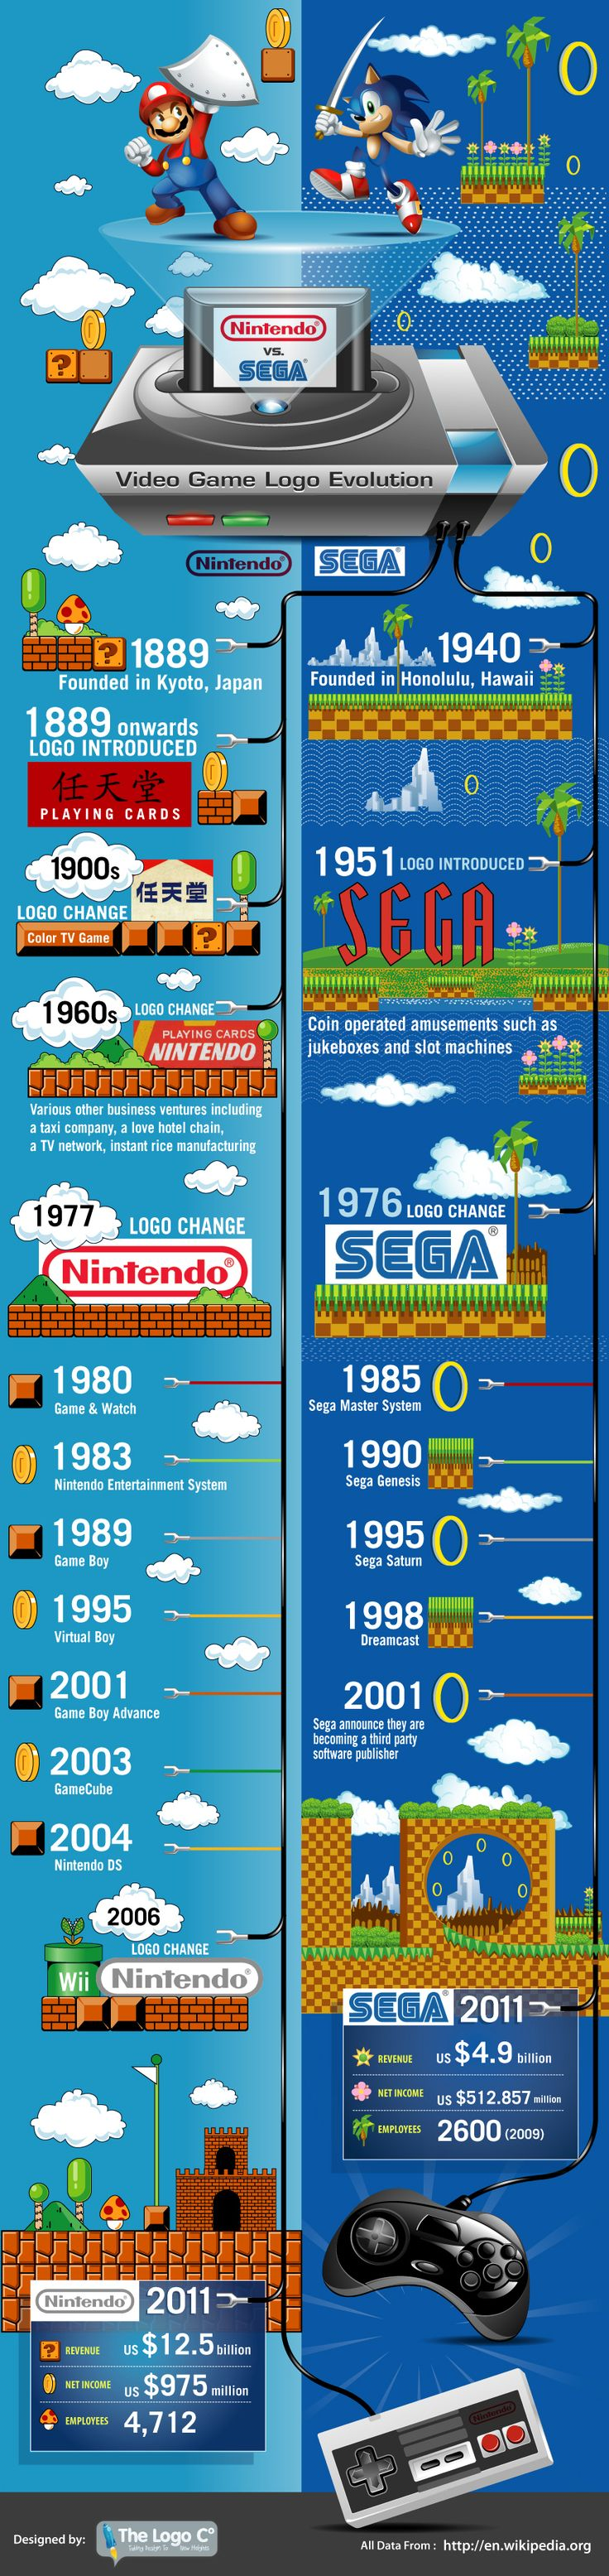 Nintendo/Sega Logo Evolution - Interesting but not complete; SEGA Started out as 'SErvice GAmes' and there is no SNES listed but still kinda neat.